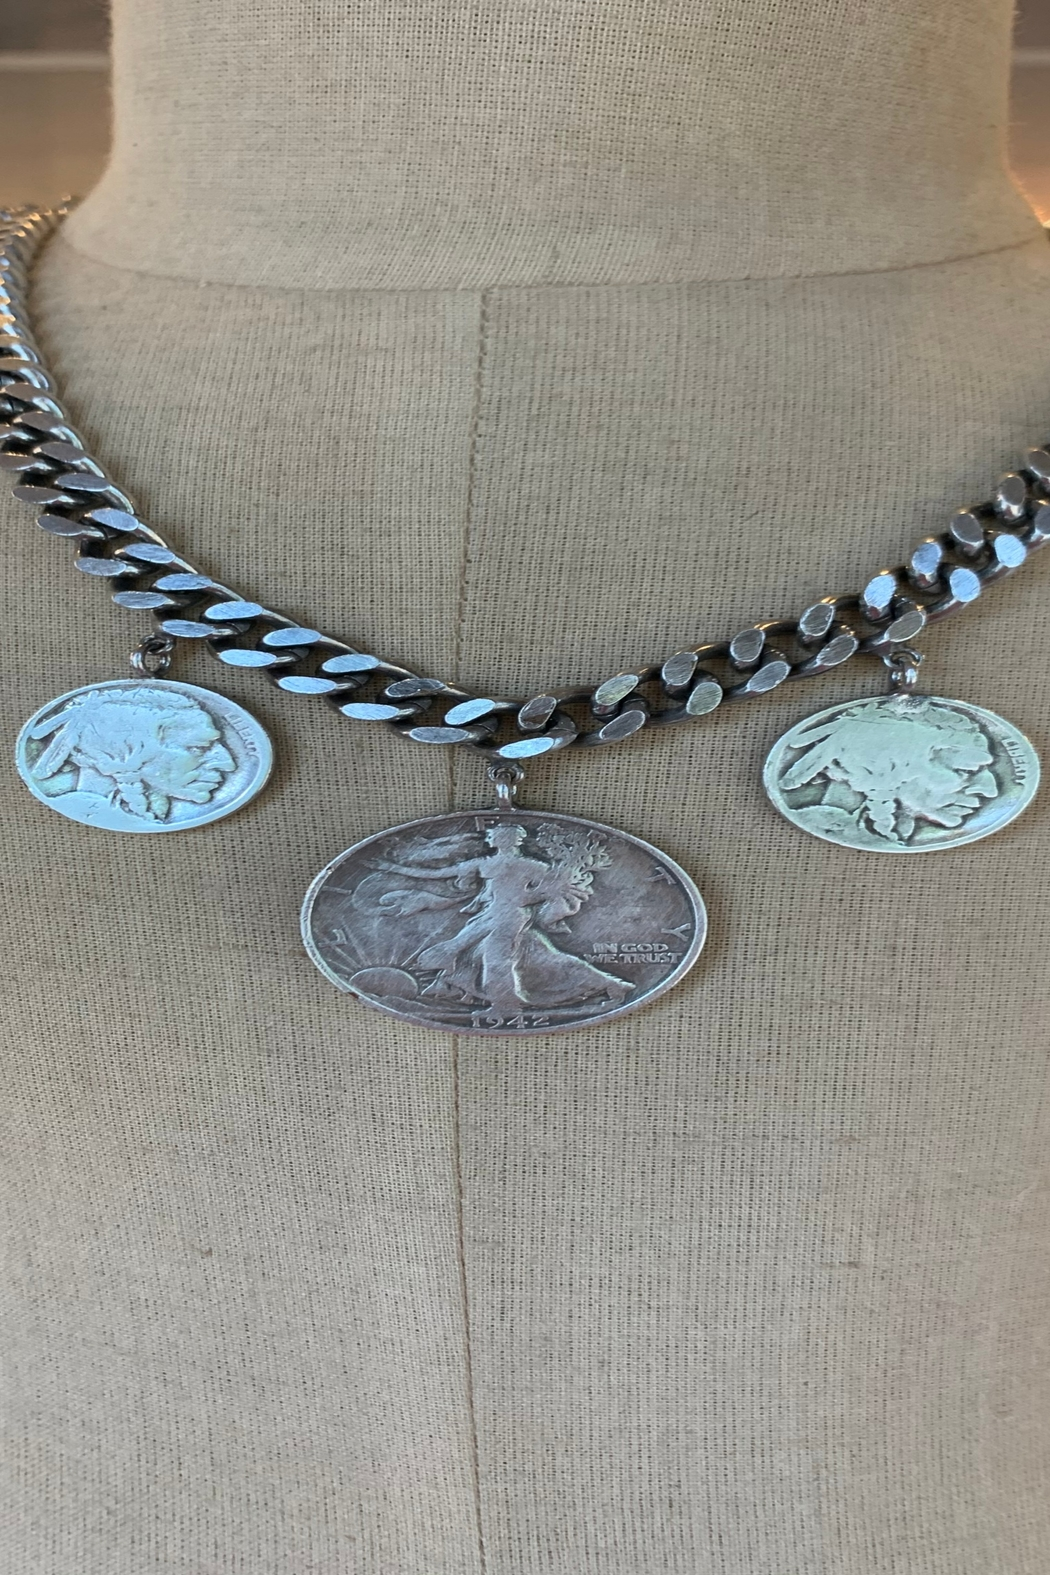 Janis Savitt Antique silver necklace with three coins - Main Image